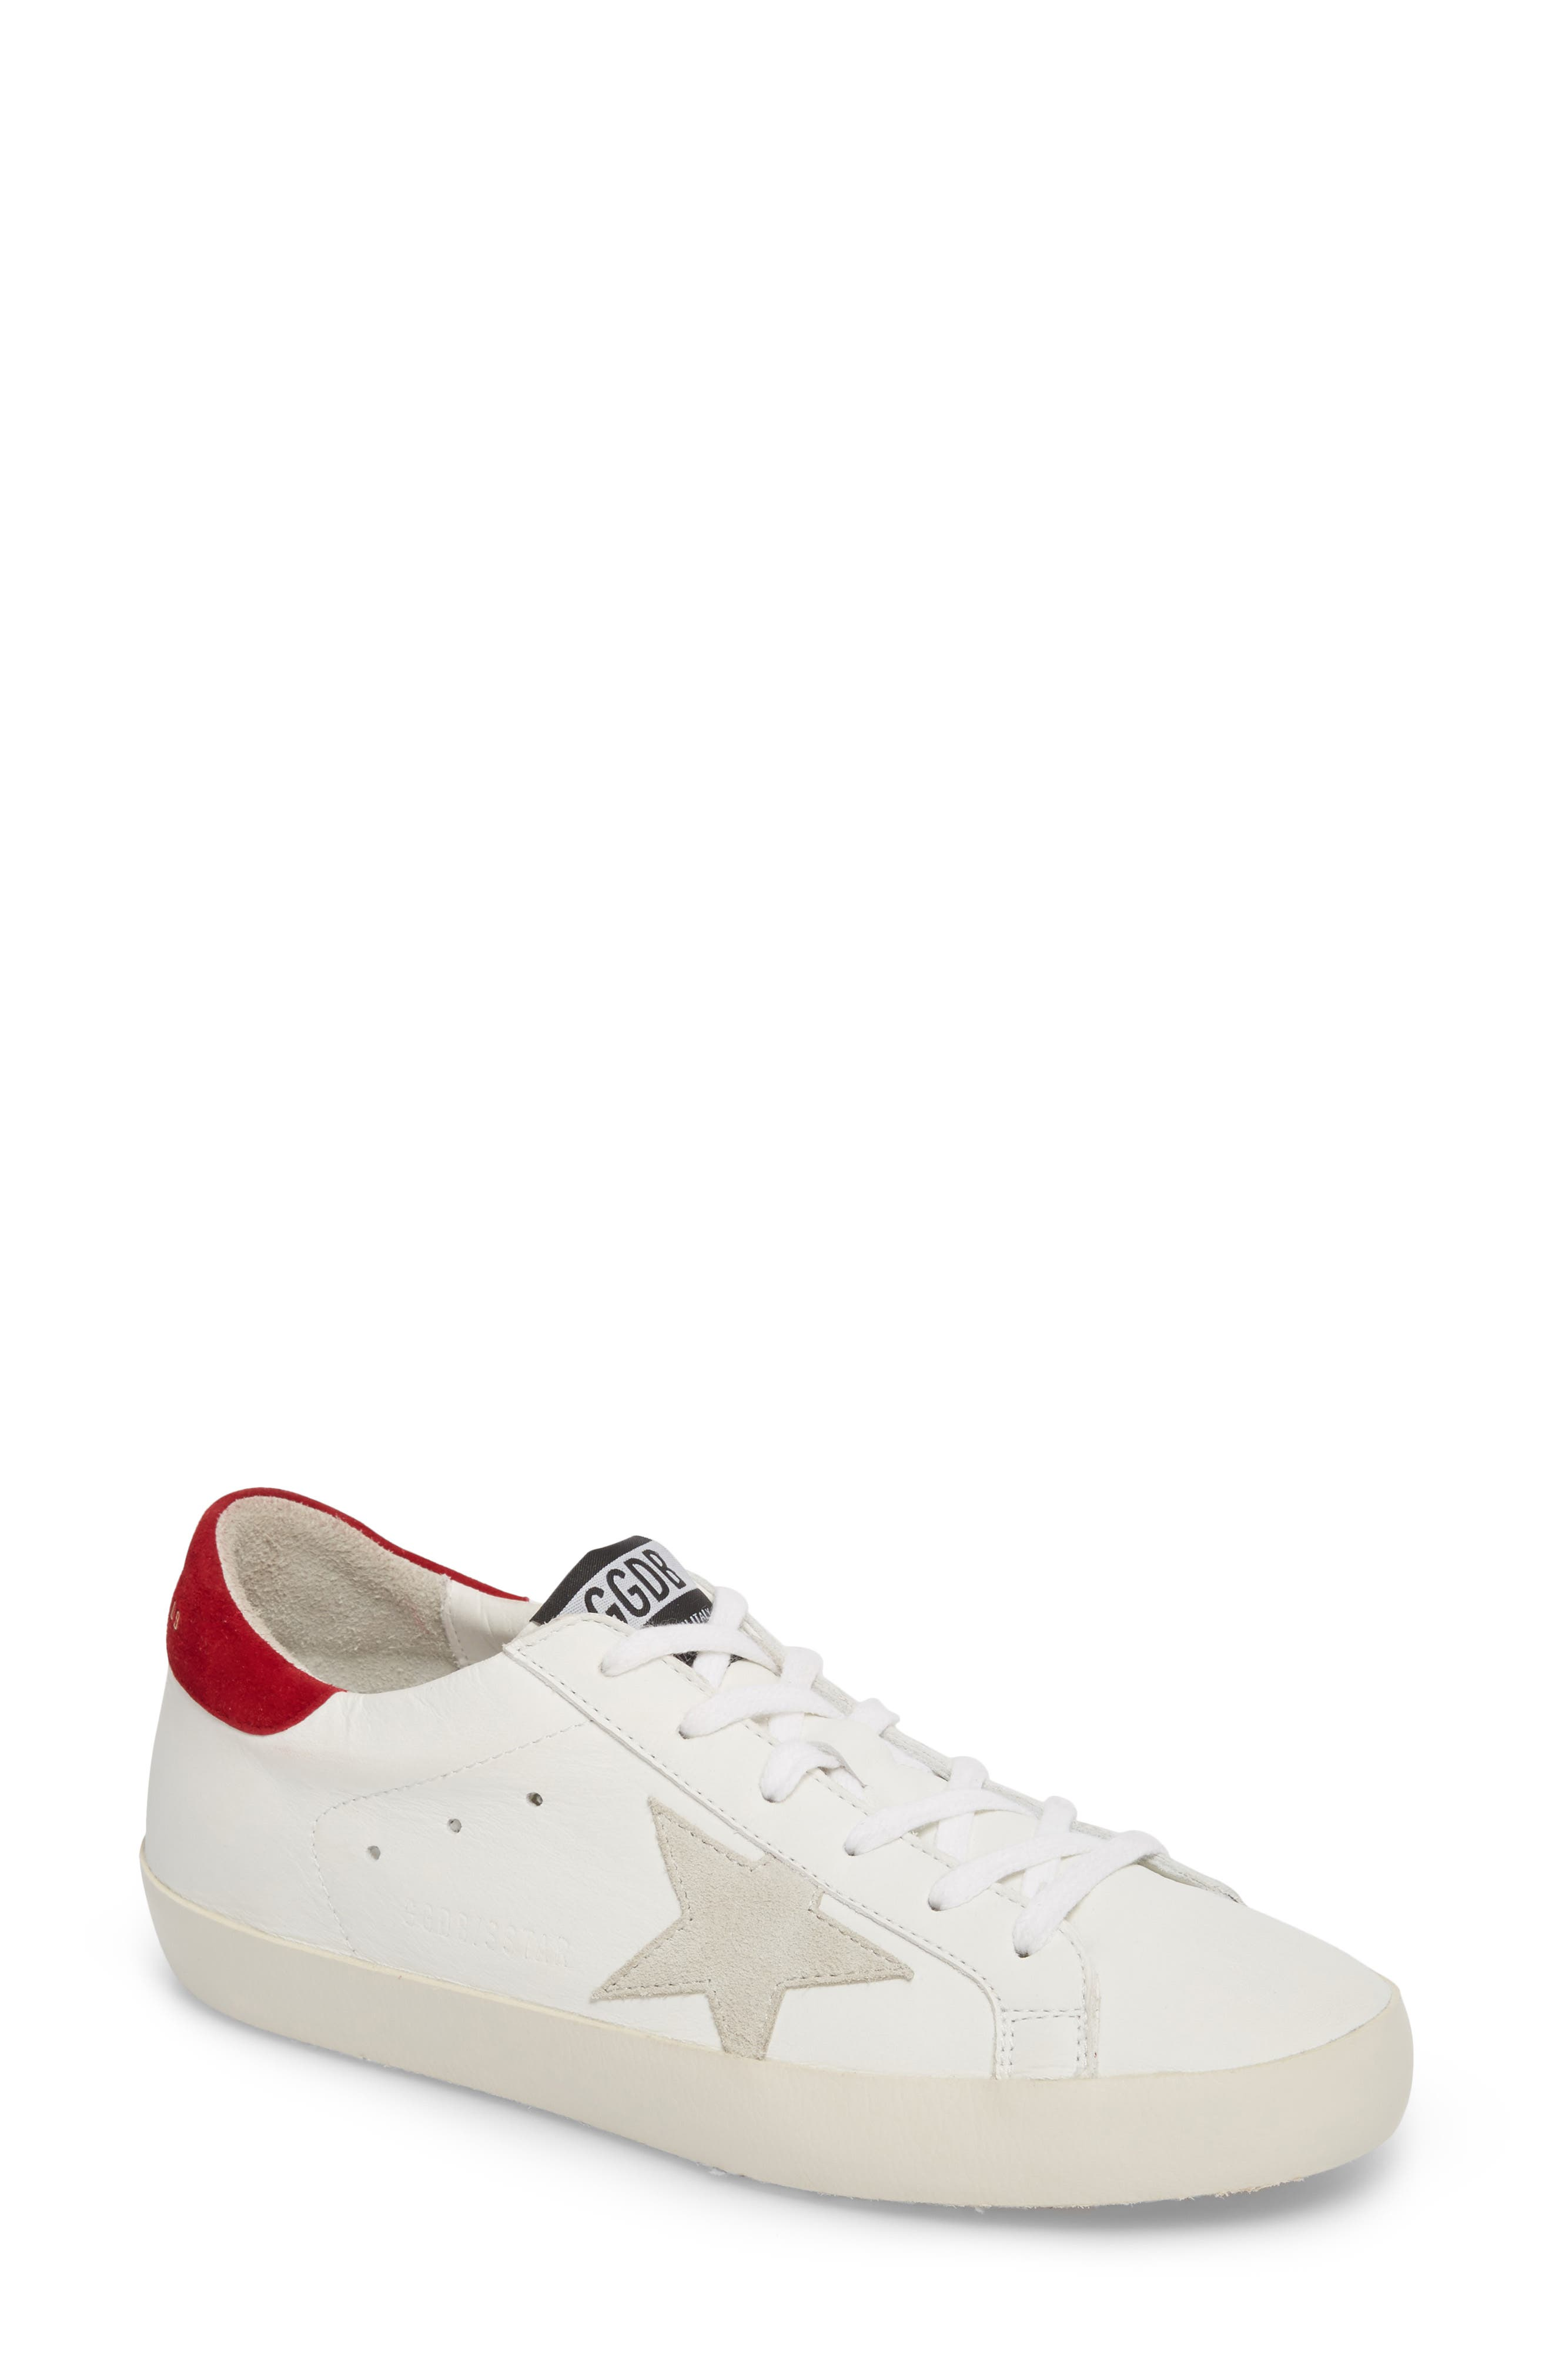 Superstar Low Top Sneaker,                         Main,                         color, White/ Bordeaux